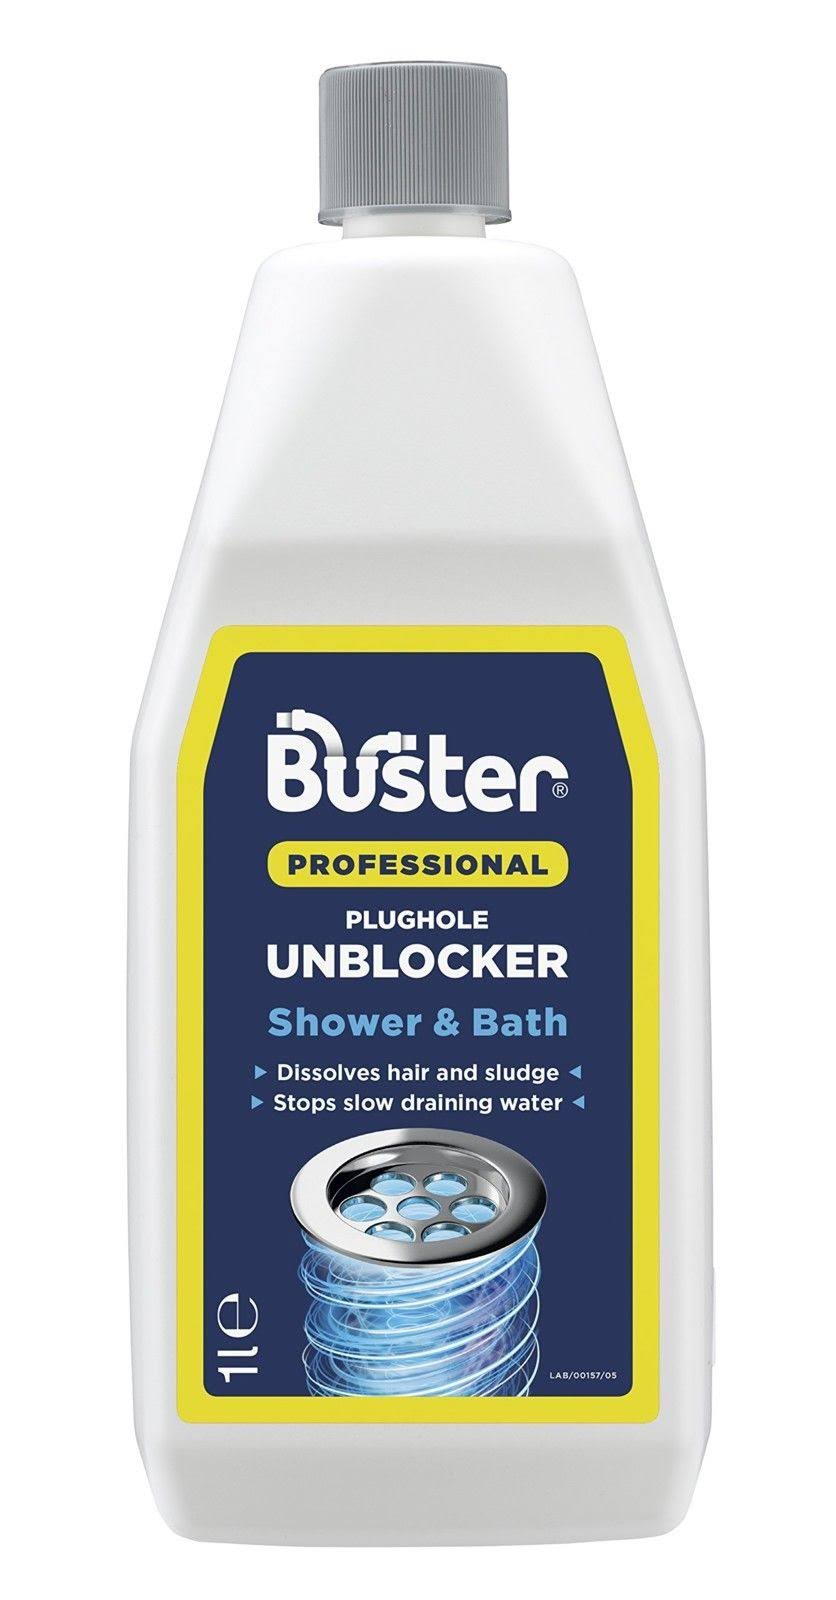 Buster Professional Shower and Bath Plughole Unblocker Drain Opener - 1 Liter